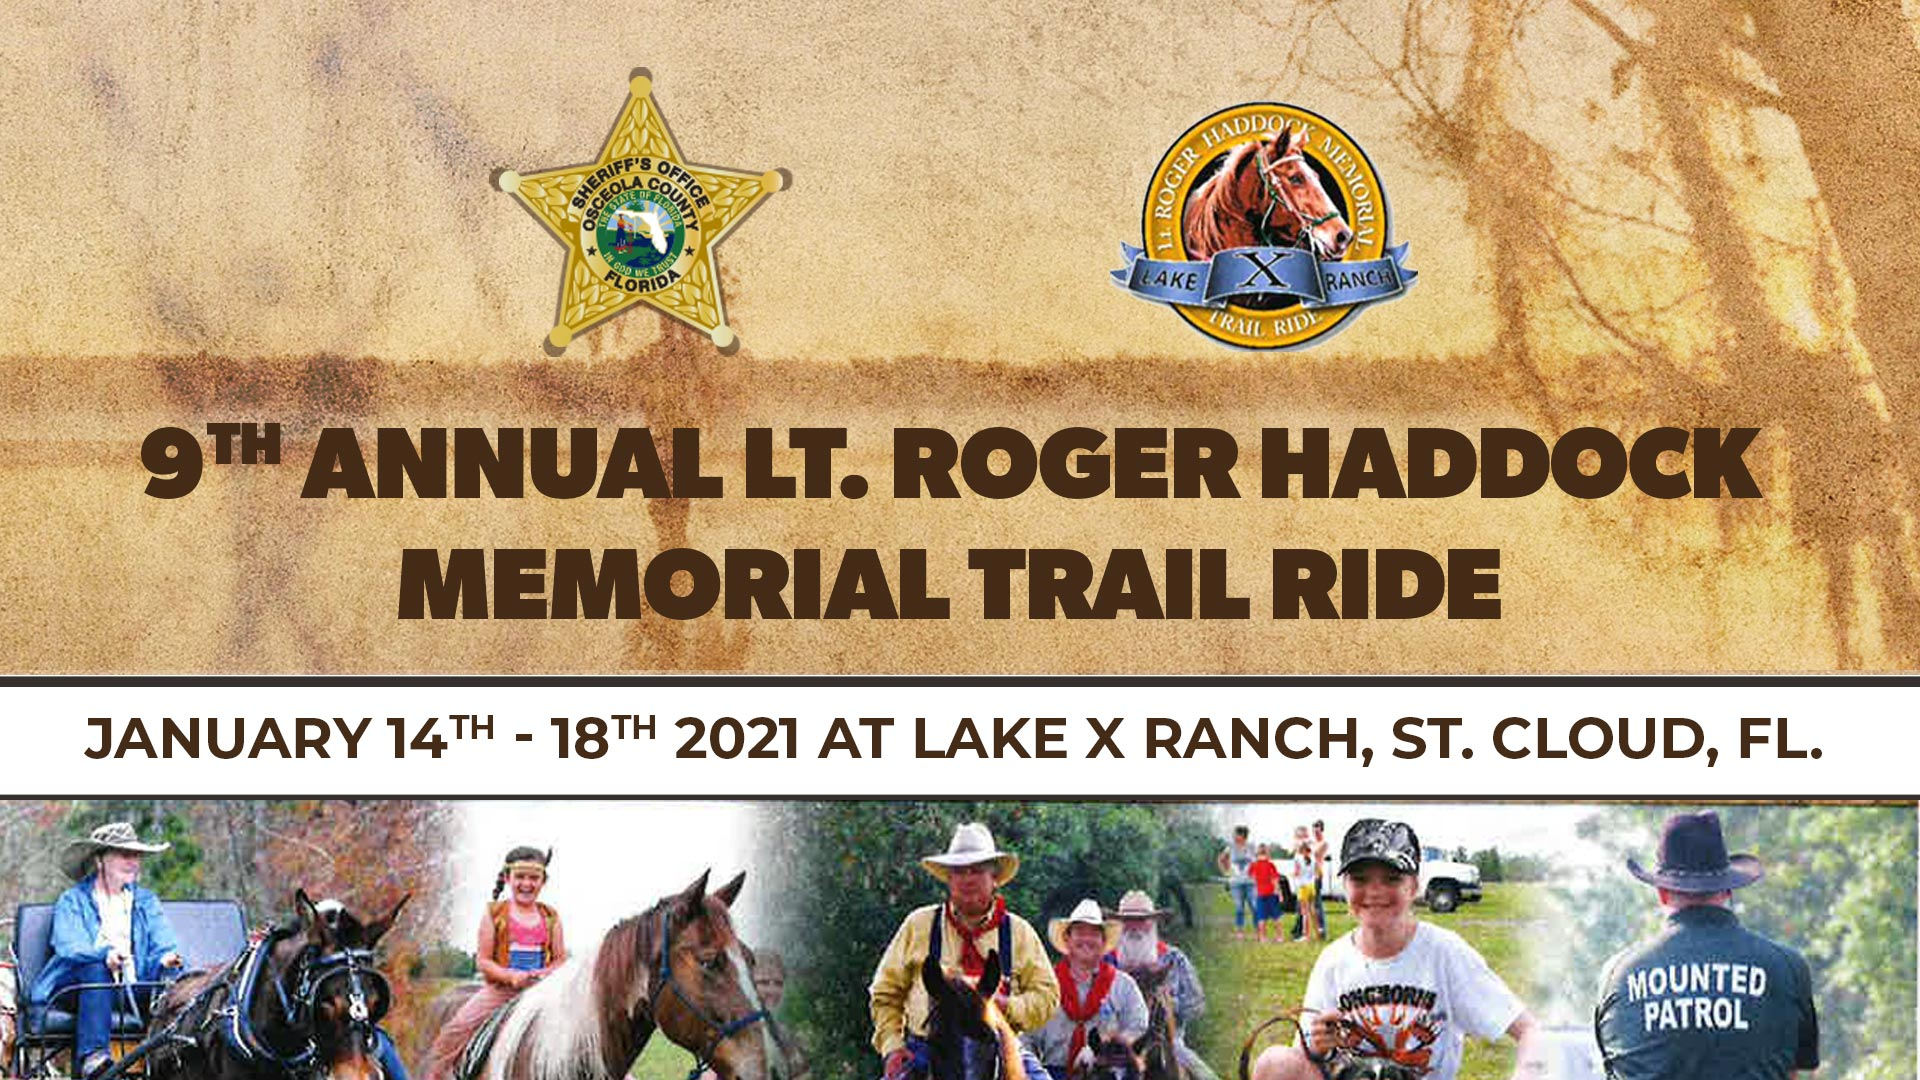 9th annual lt. roger haddock memorial trail ride Event Cover